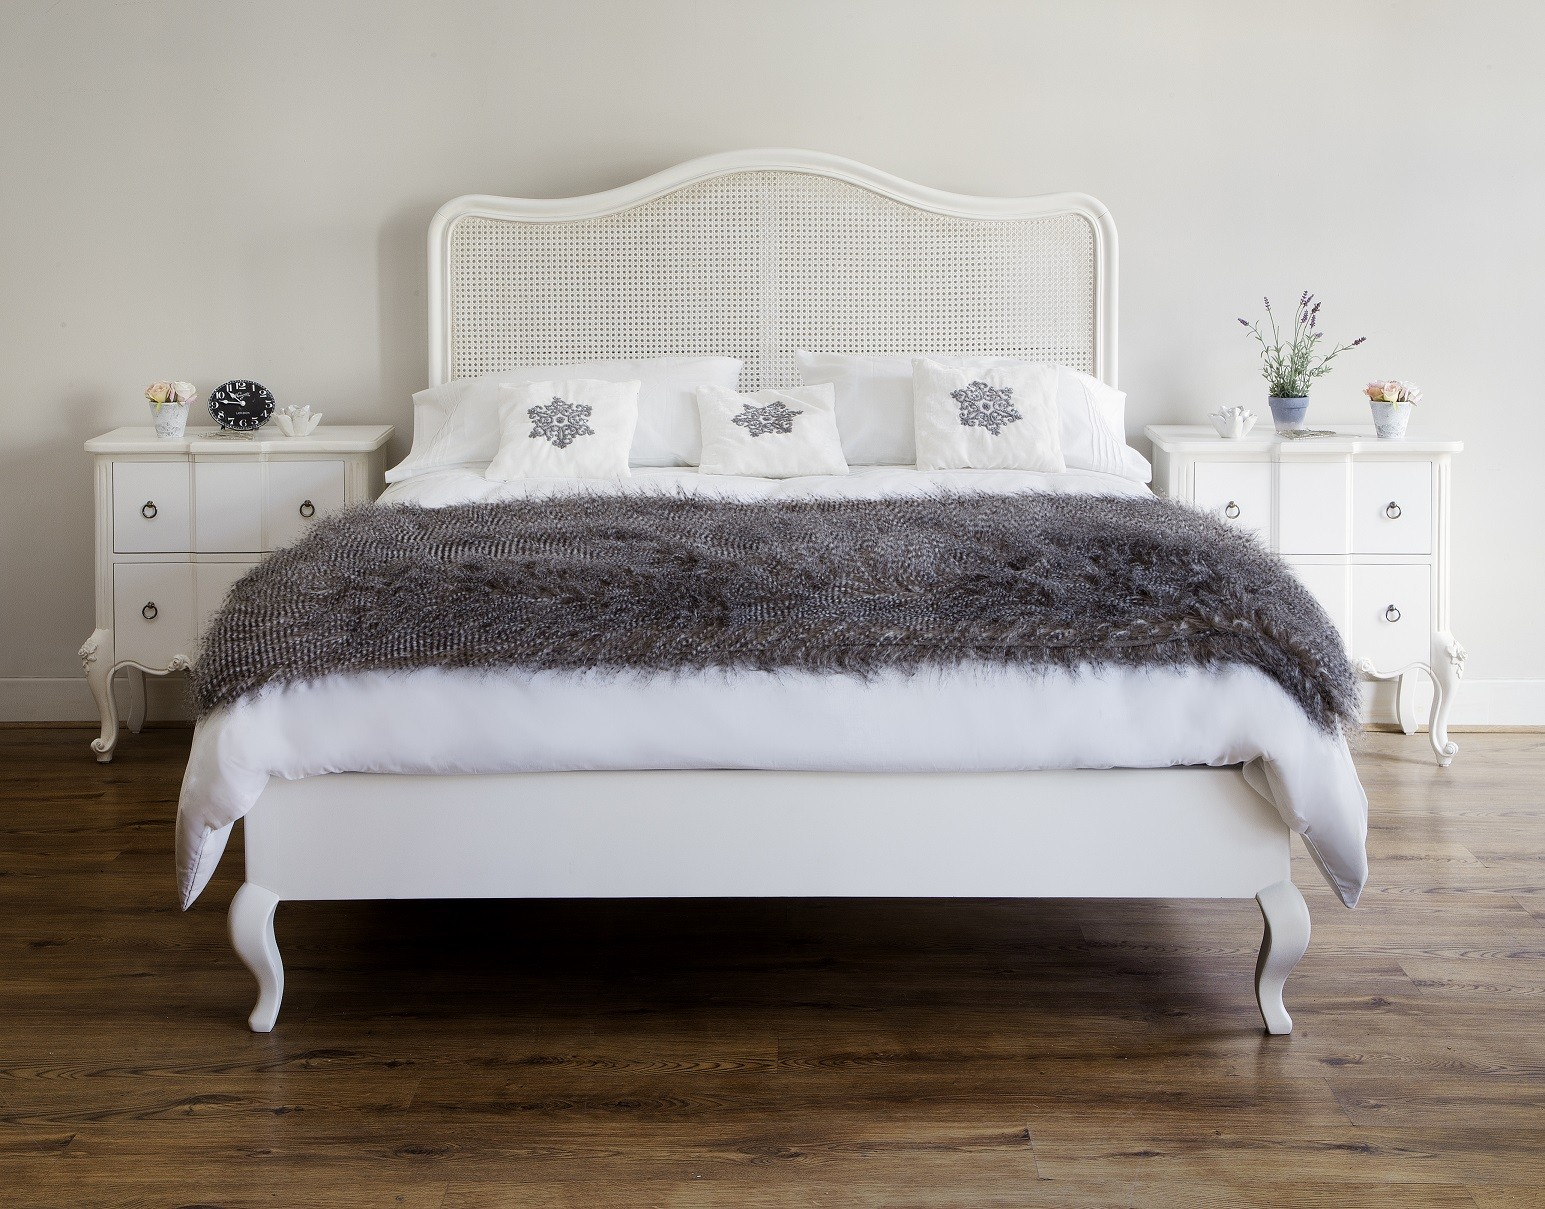 Charmant Beaulieu French Rattan Bed   Set Image